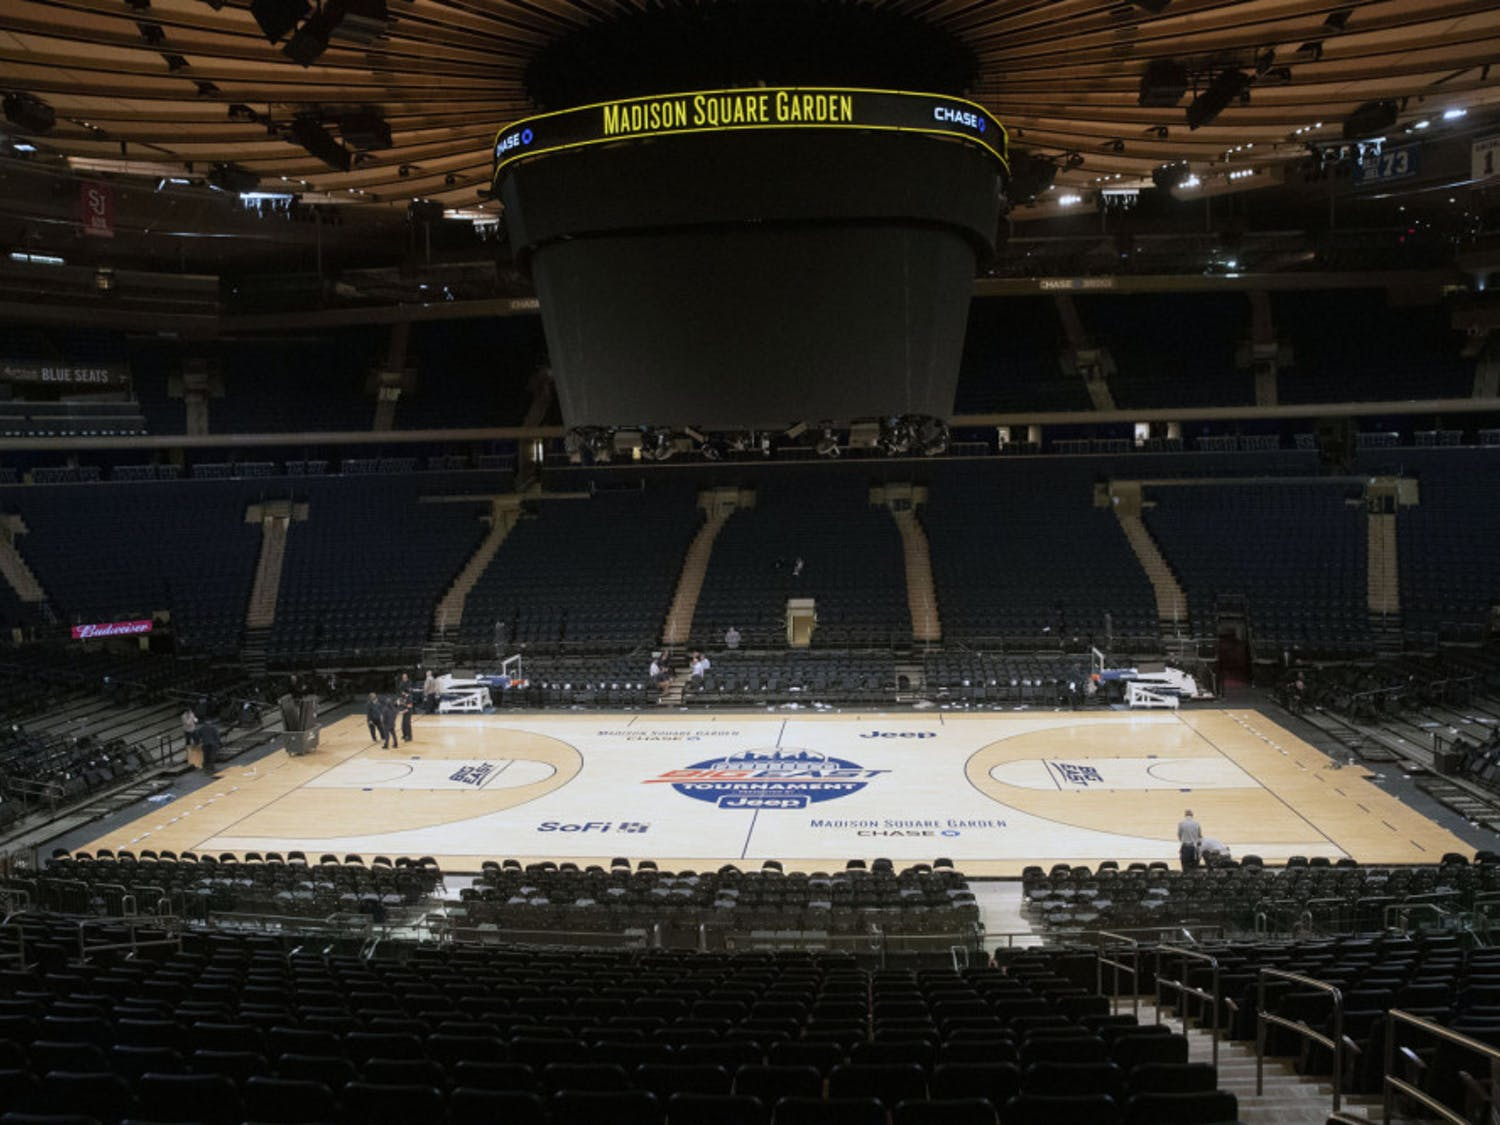 Madison Square Garden is shown after NCAA college basketball games in the men's Big East Conference tournament were cancelled due to concerns about the coronavirus, Thursday, March 12, 2020, in New York. The major conferences in college sports have all cancelled their basketball tournaments because of the new coronavirus, putting the celebrated NCAA Tournament in doubt.(AP Photo/Mary Altaffer)